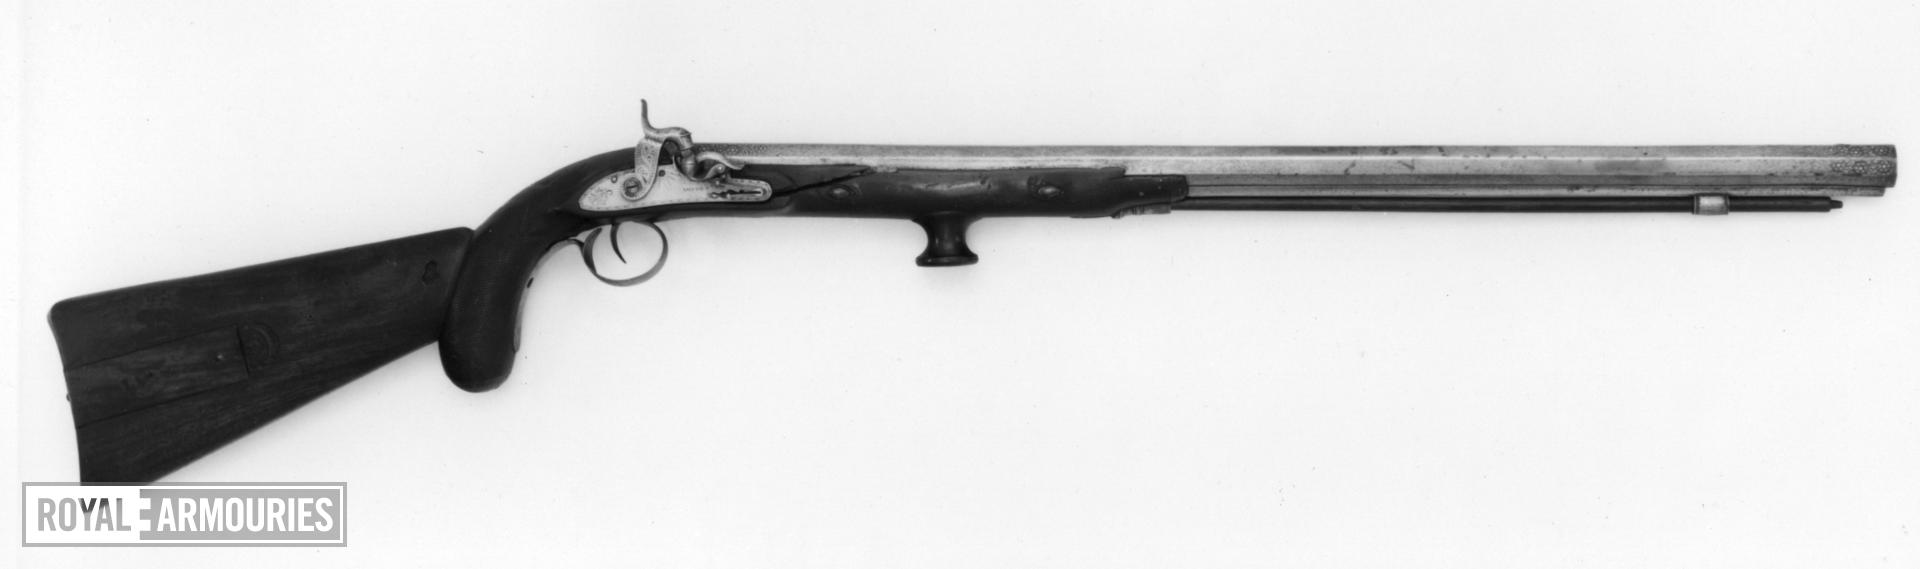 Percussion rifle converted from a flintlock.